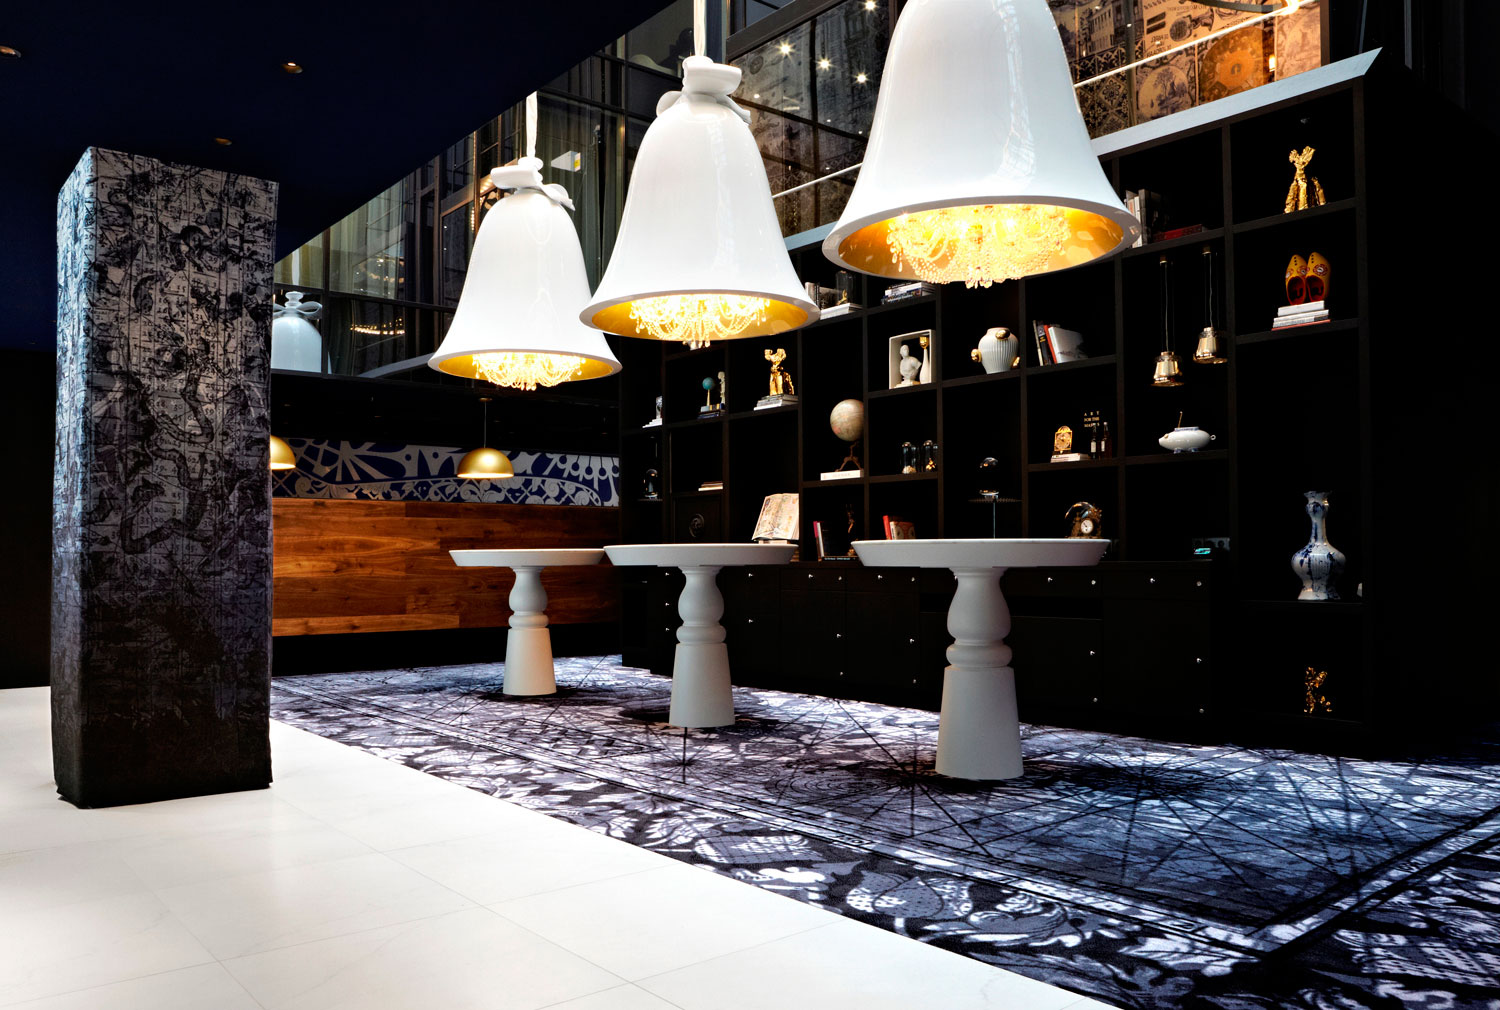 marcel wanders Best Interior Design Projects by Marcel Wanders Best Interior Design Projects by Marcel Wanders Andaz